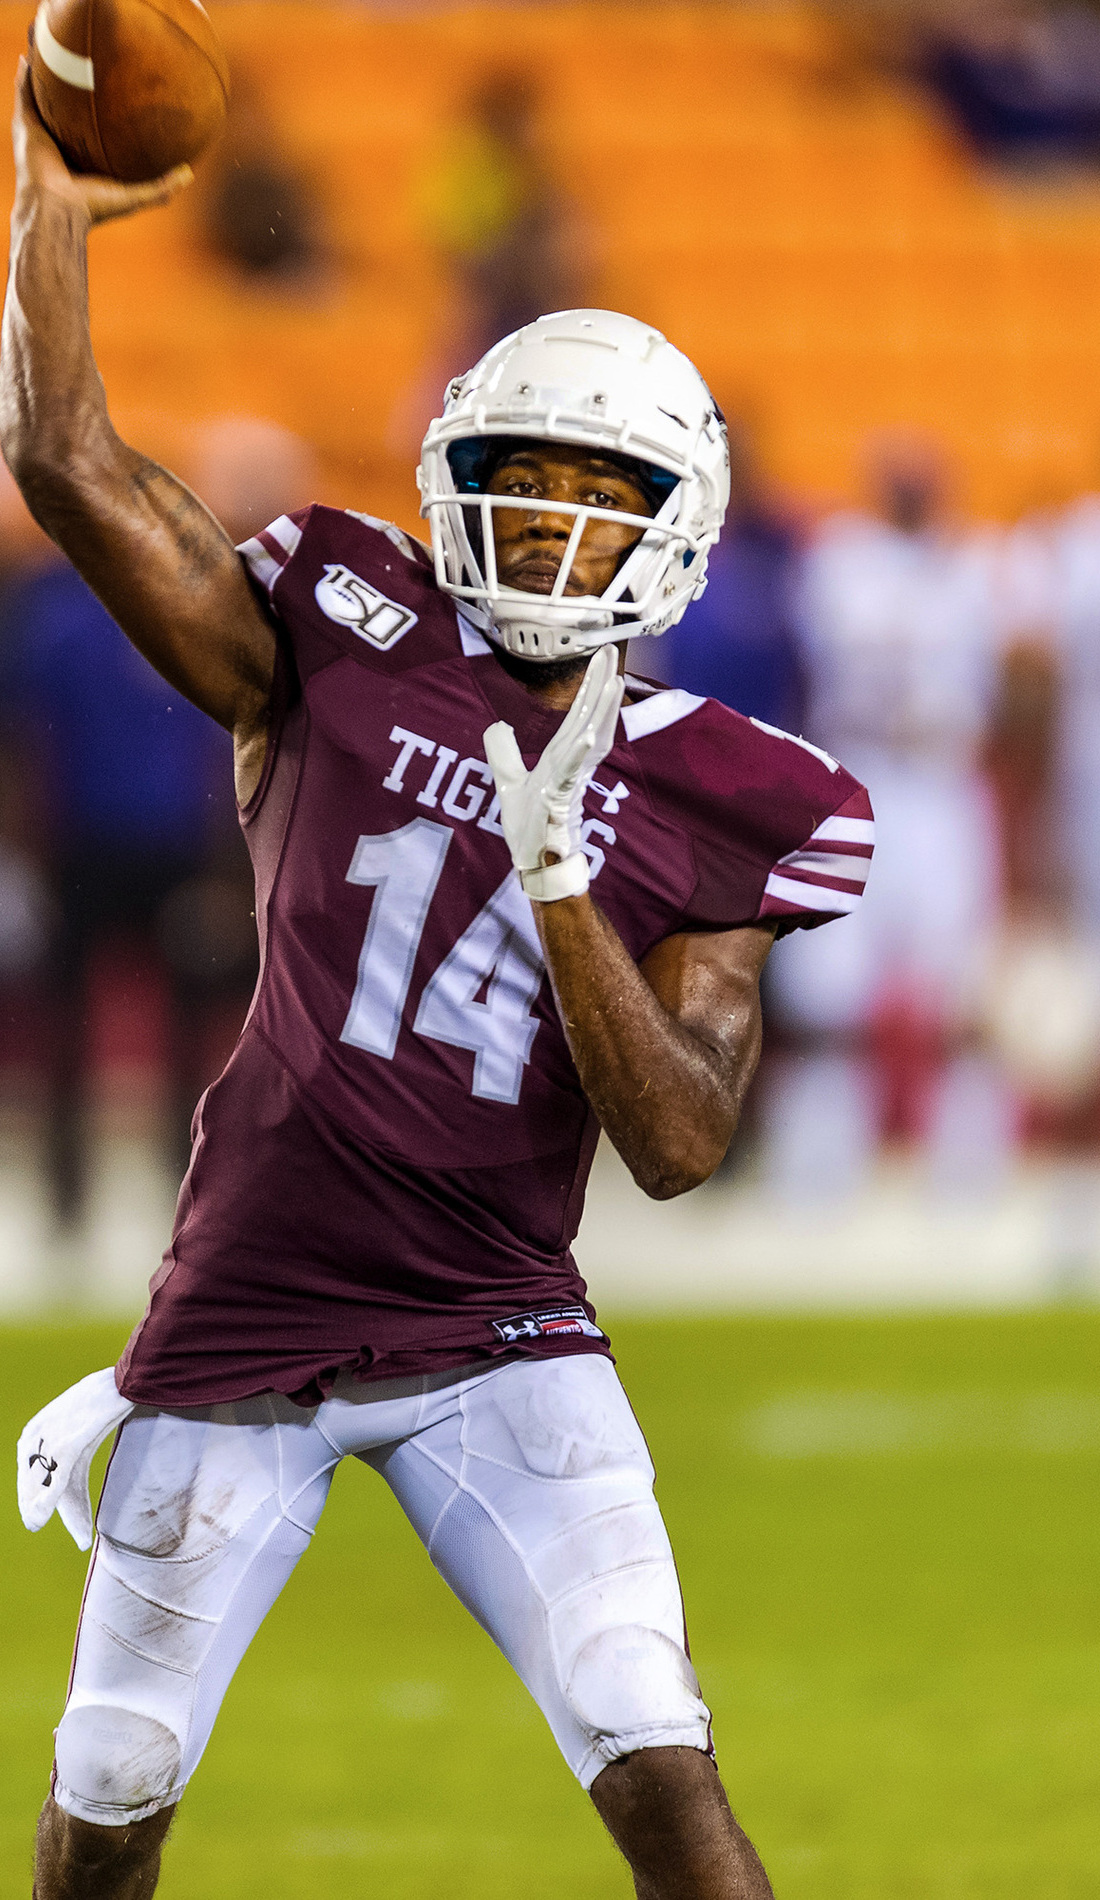 A Texas Southern Tigers Football live event